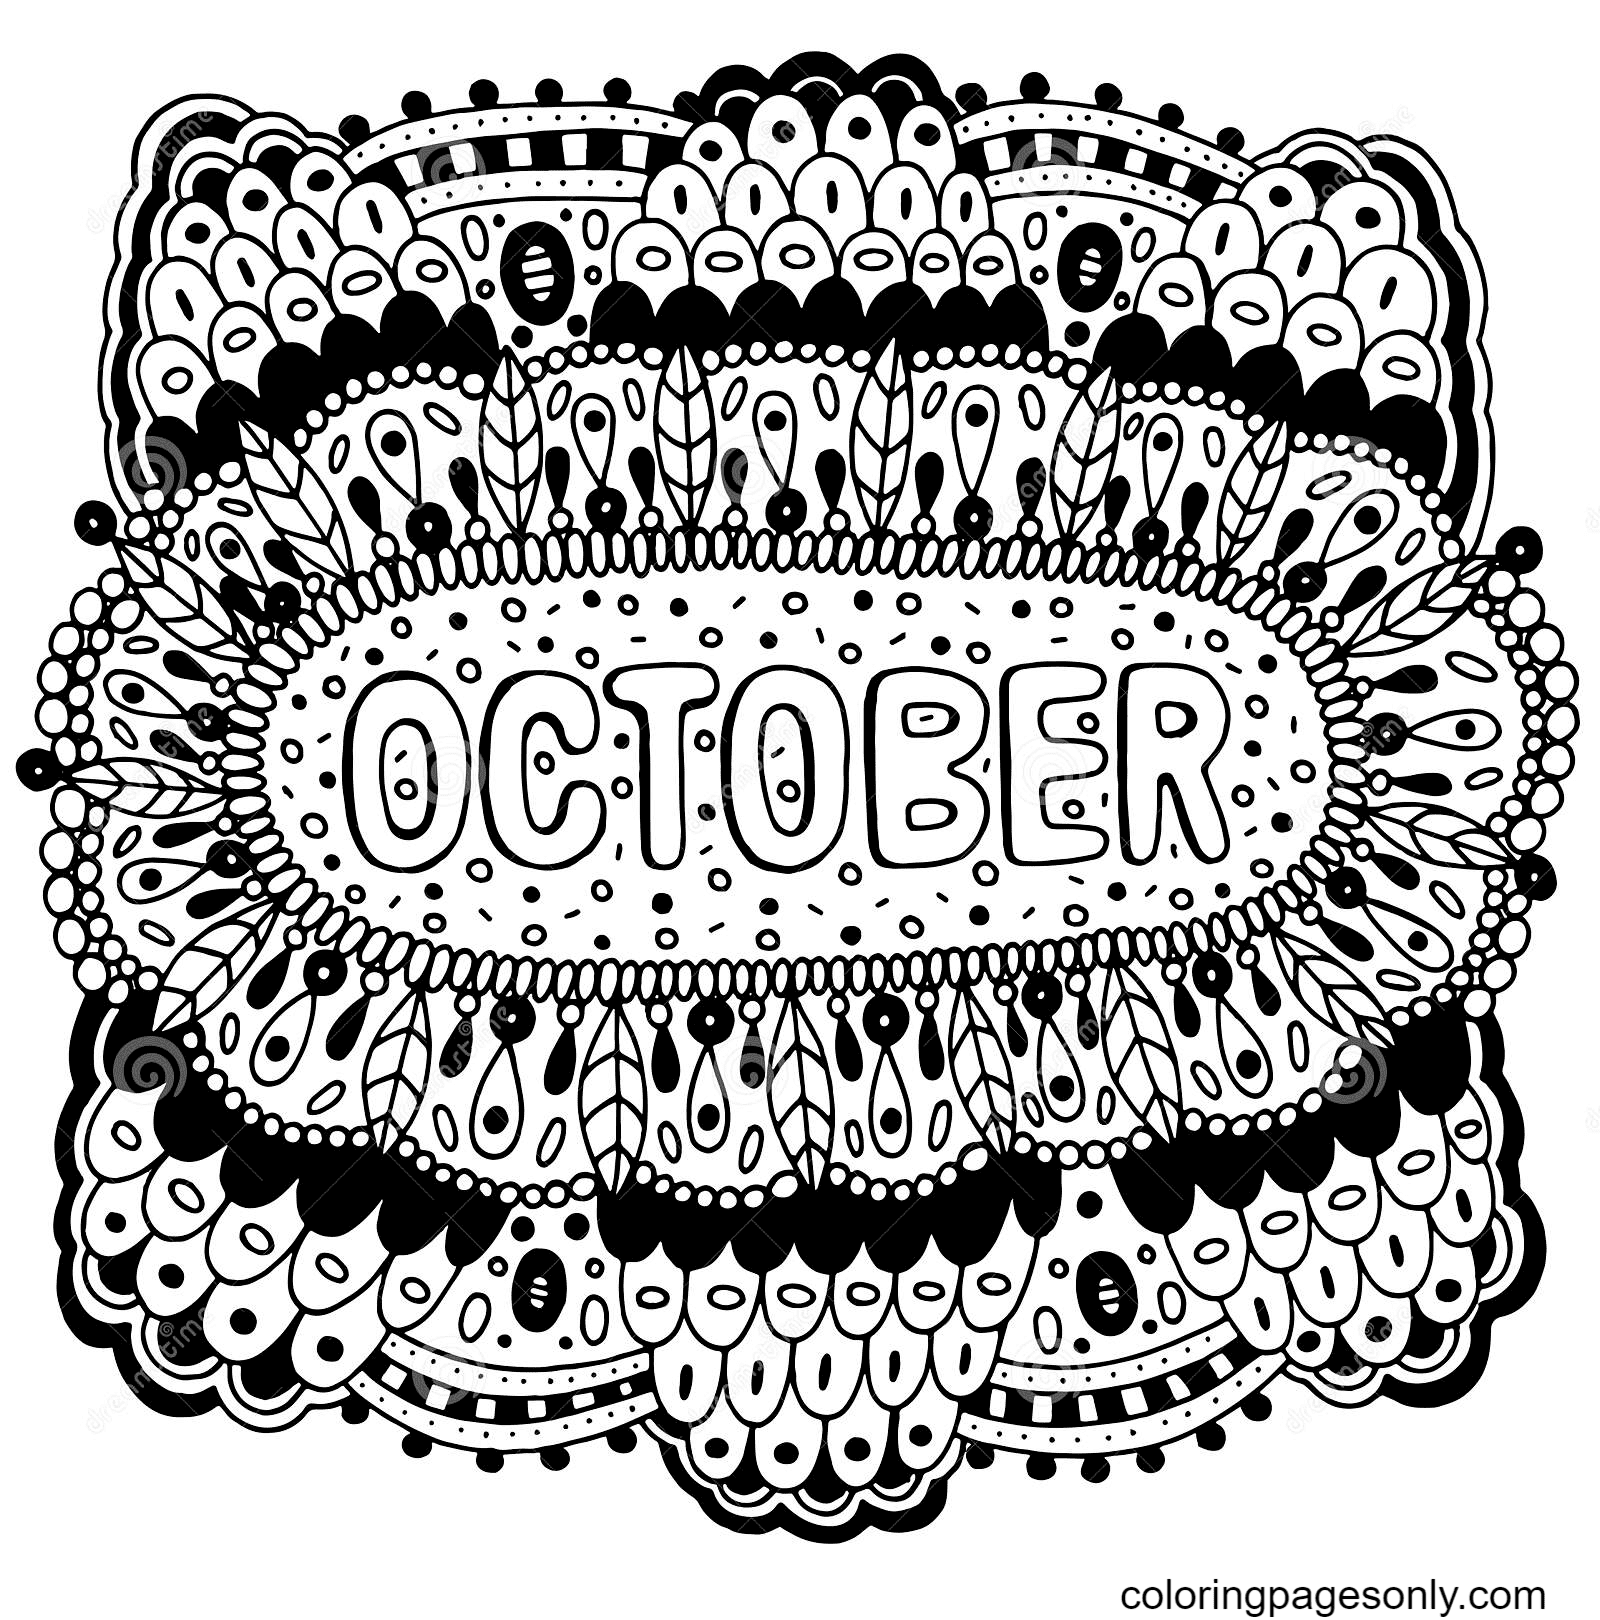 Mandala with October months Coloring Page